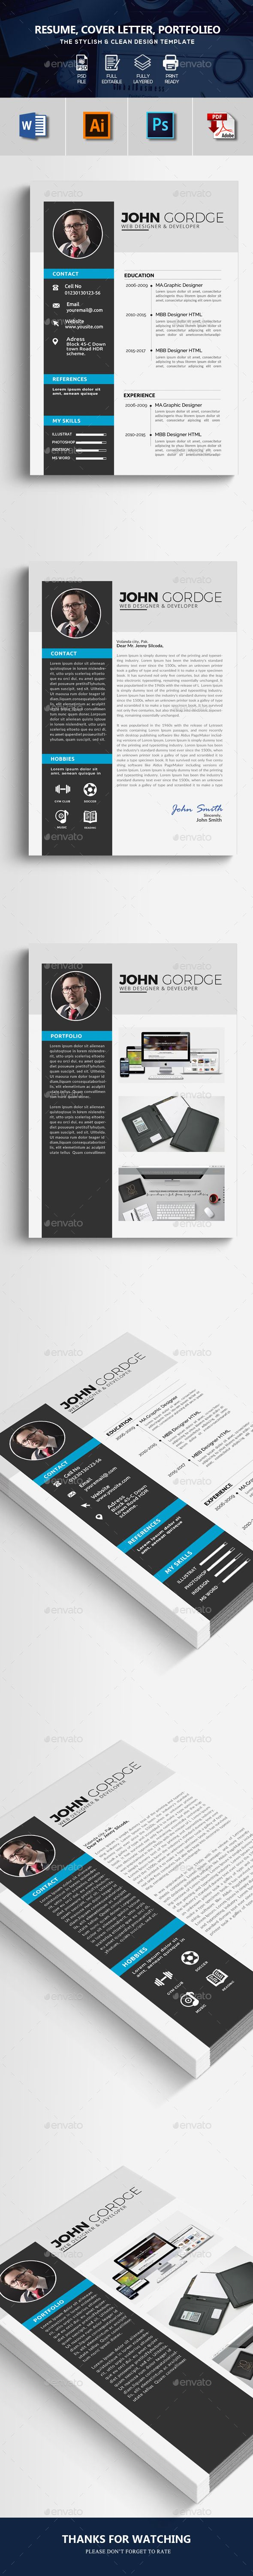 Corporate Resume Design Template #resume clean #resume word  • Download here → https://graphicriver.net/item/corporate-resume-design-template/21194912?ref=pxcr